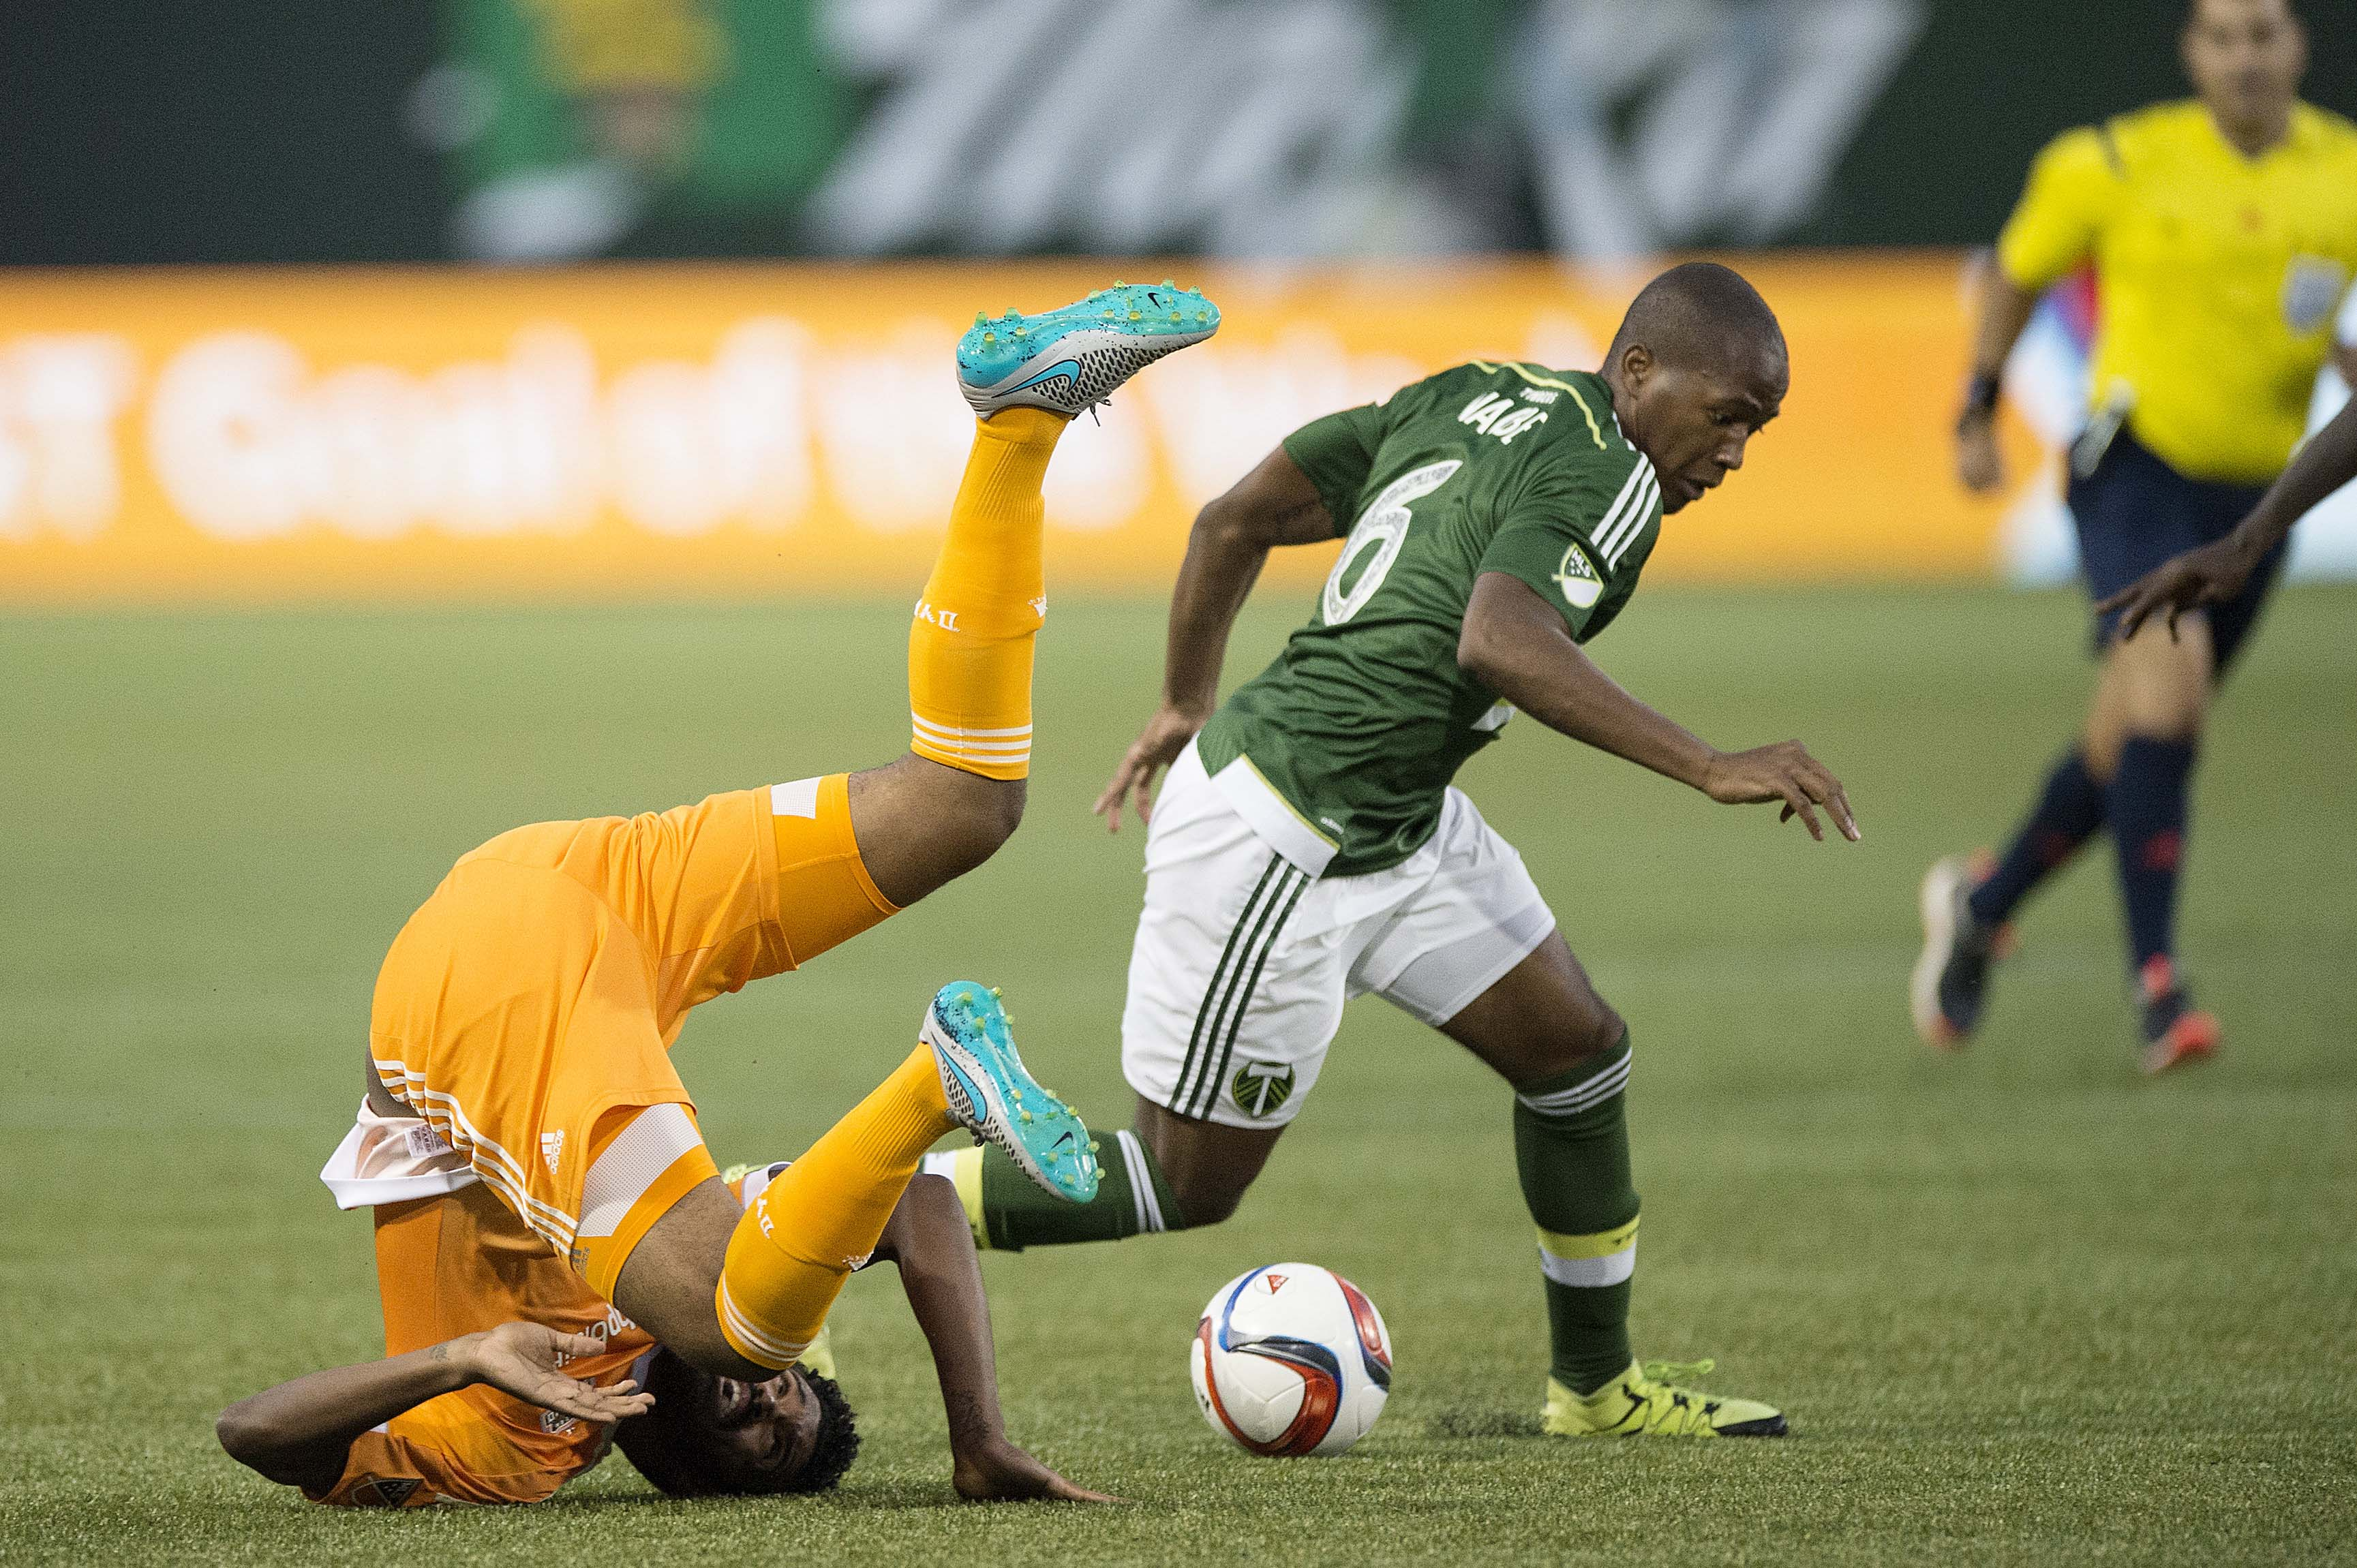 Darlington Nagbe (6) scored a magnificent goal to get things started for Portland late in the game.